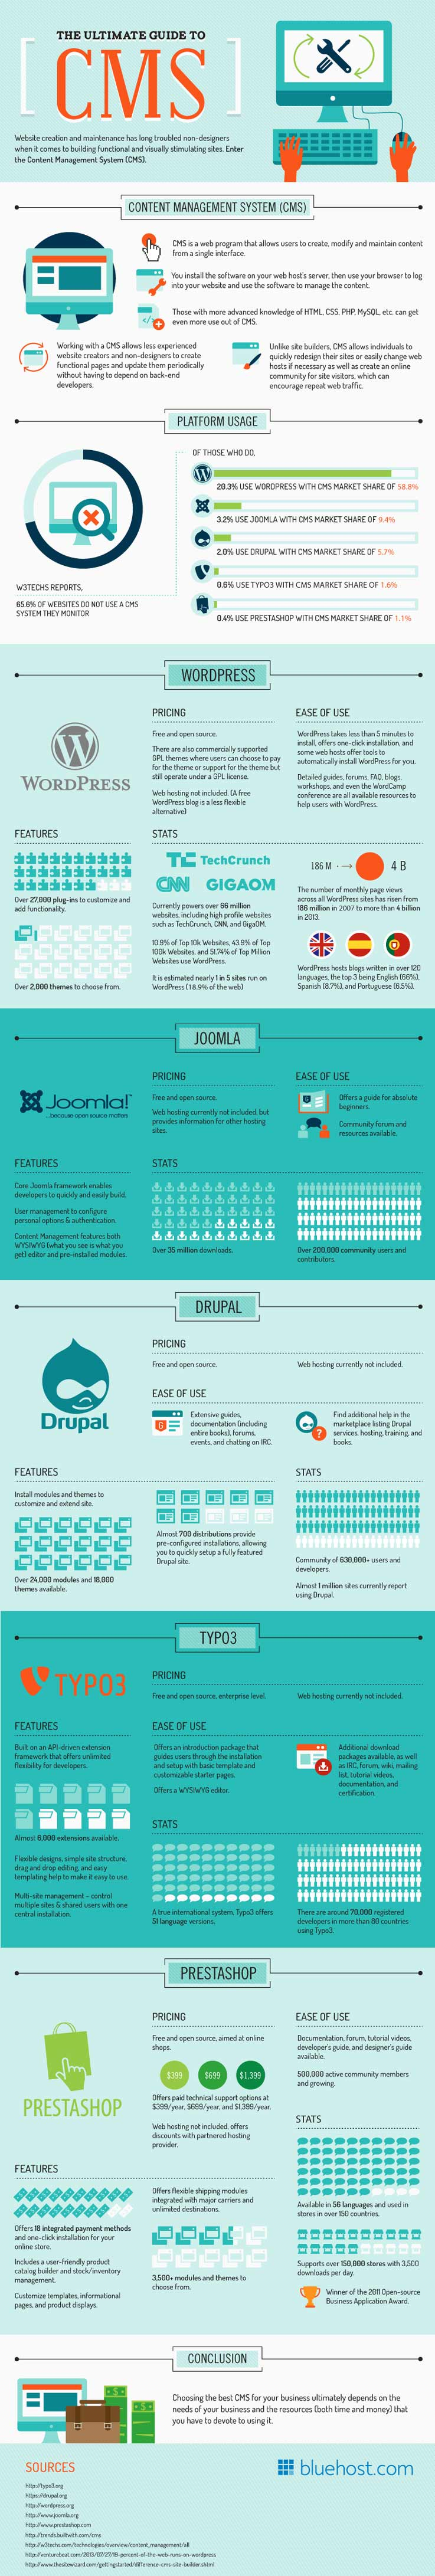 the-ultimate-guide-to-CMS-infographic